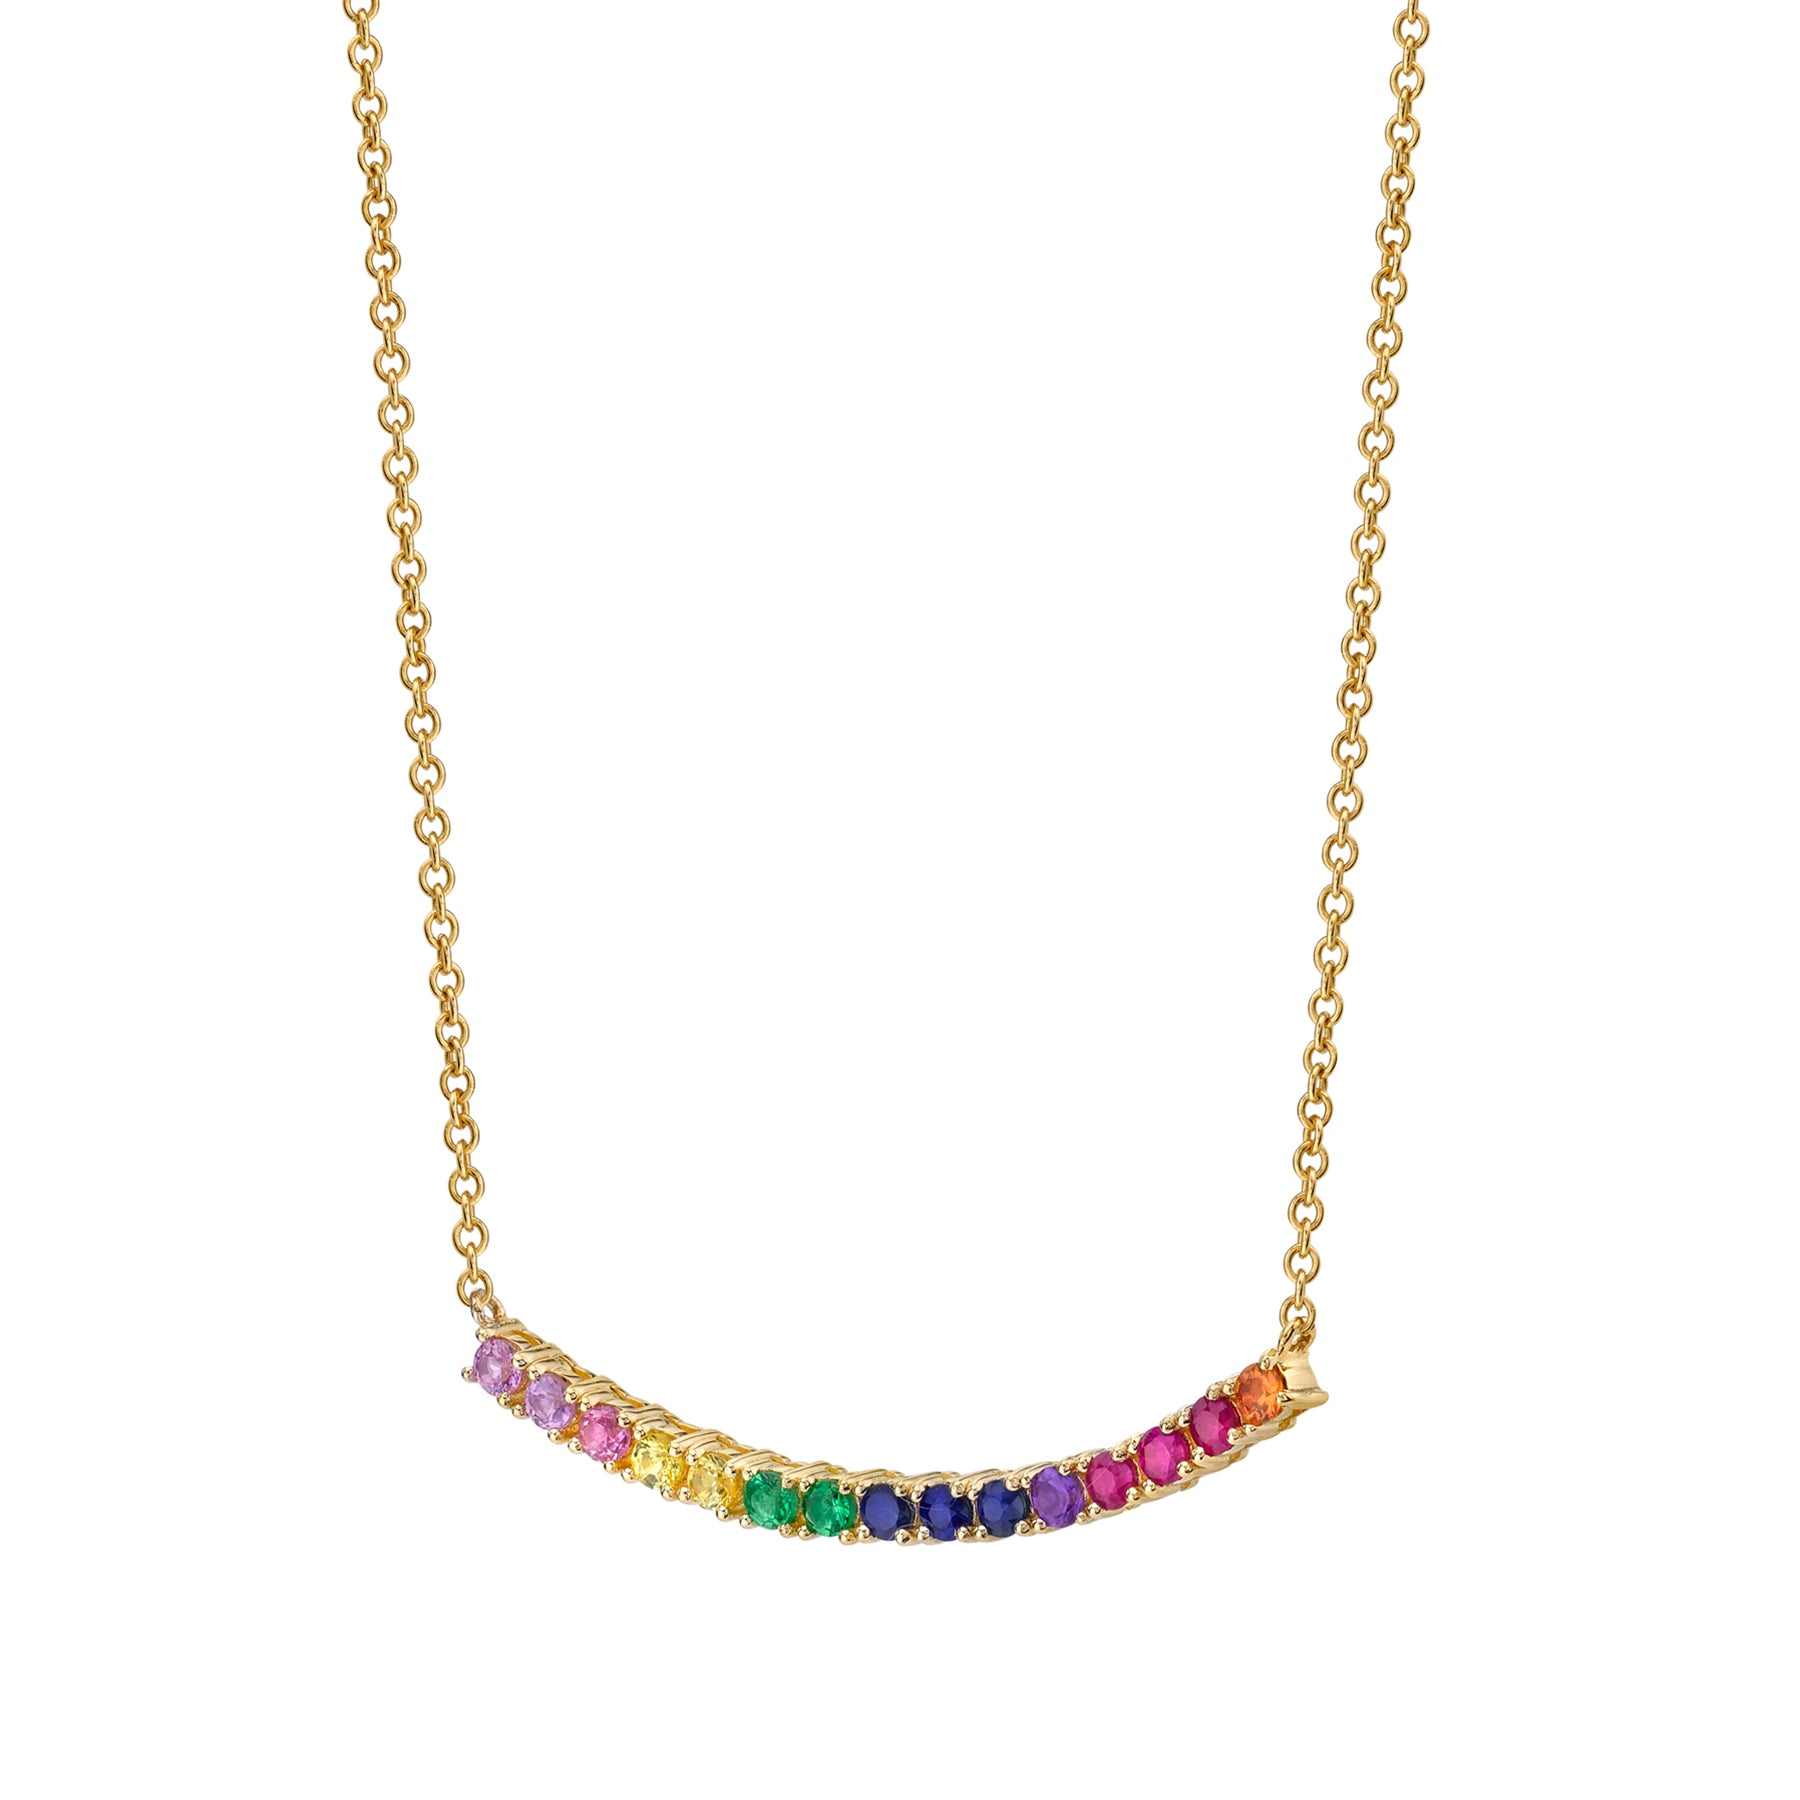 lightning necklace anton heunis rainbow vand fine stones and mian precious product